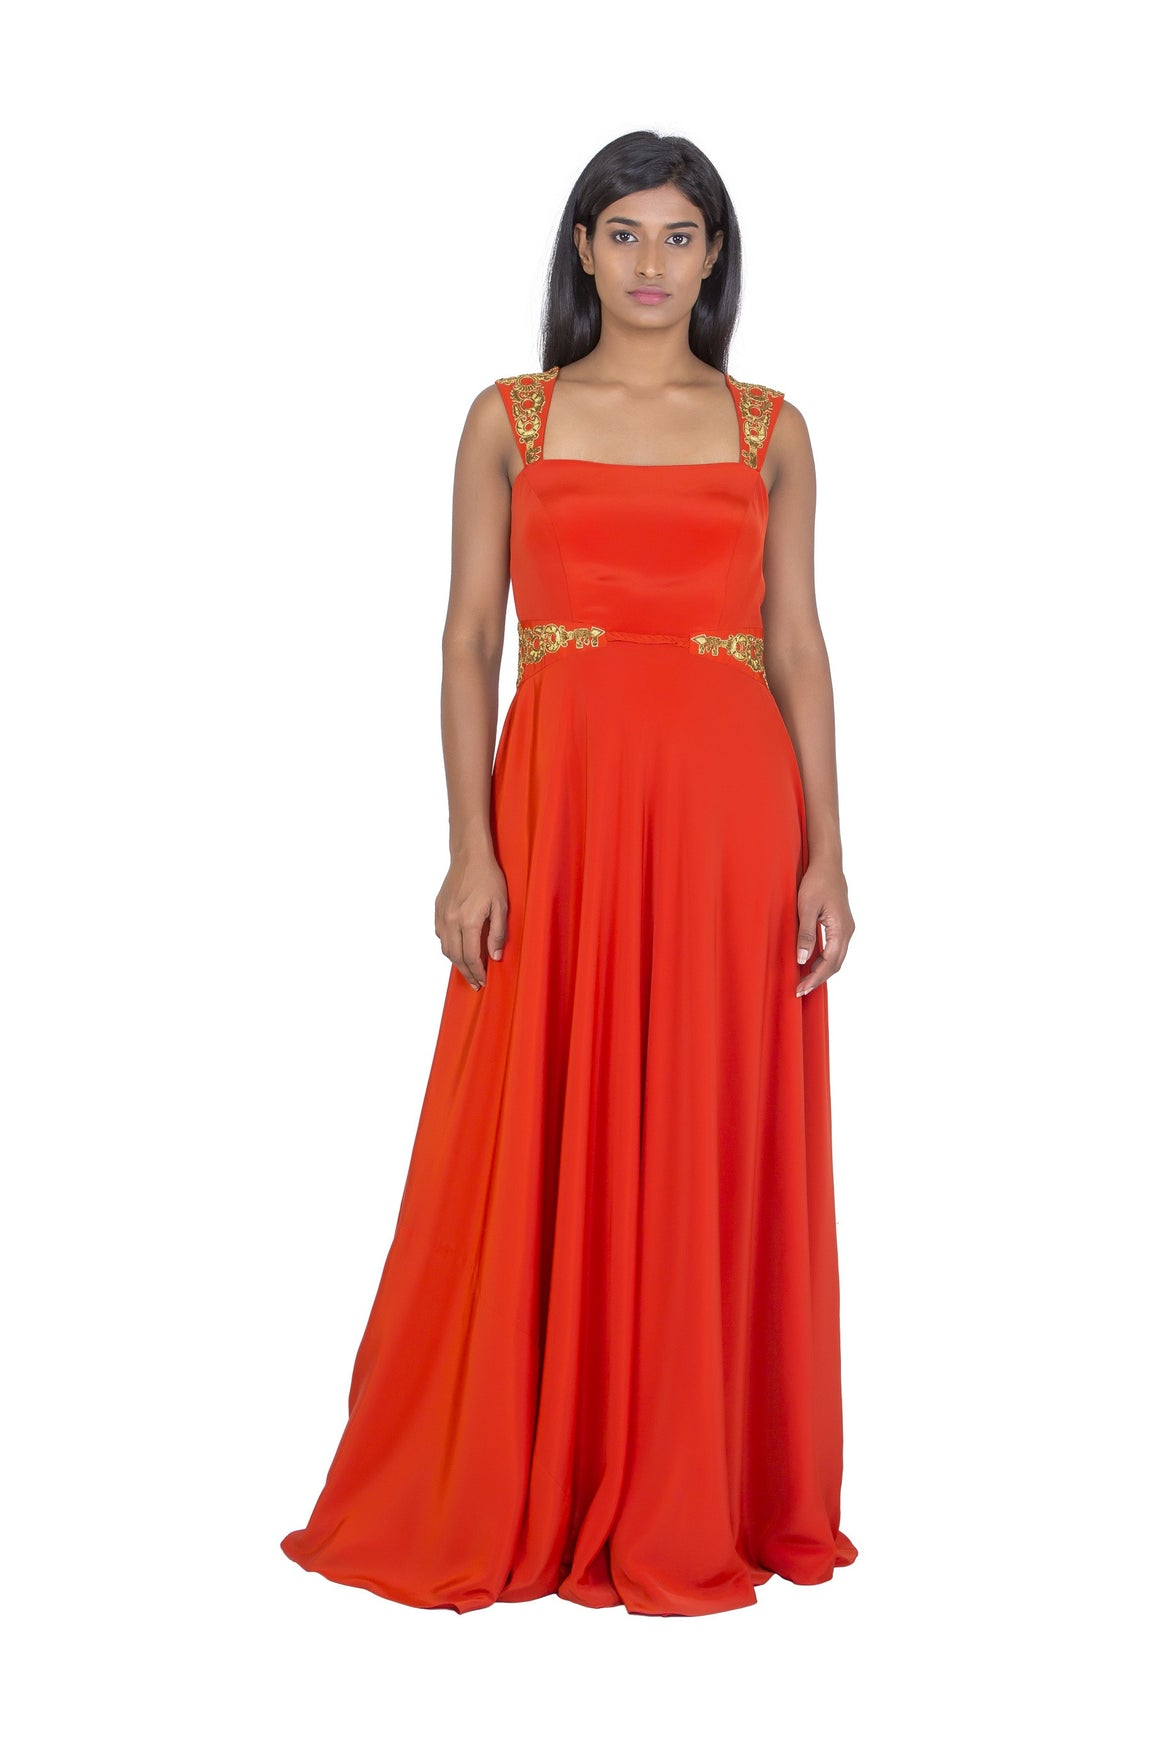 Orange full length gown